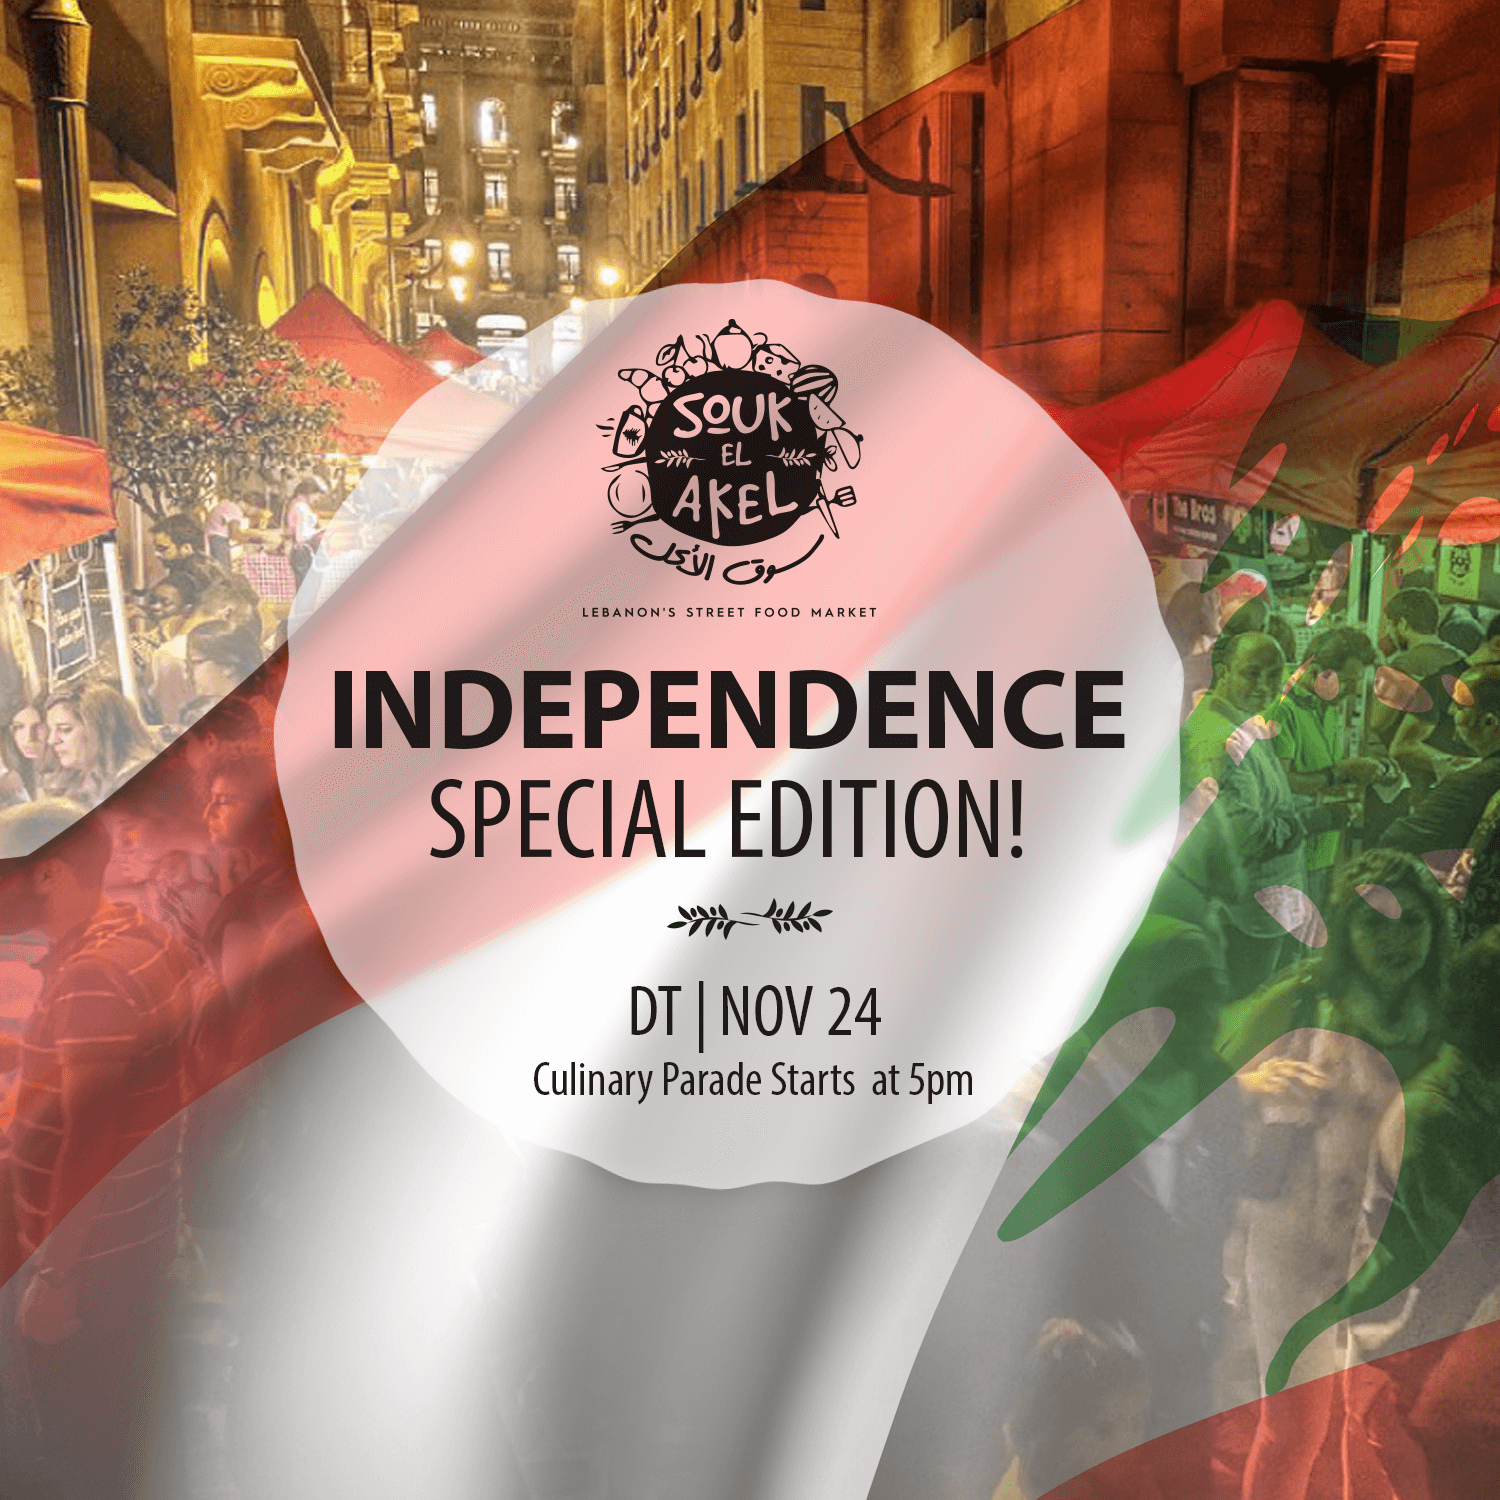 Souk-el-Akl-FB-independence-edition-20161123